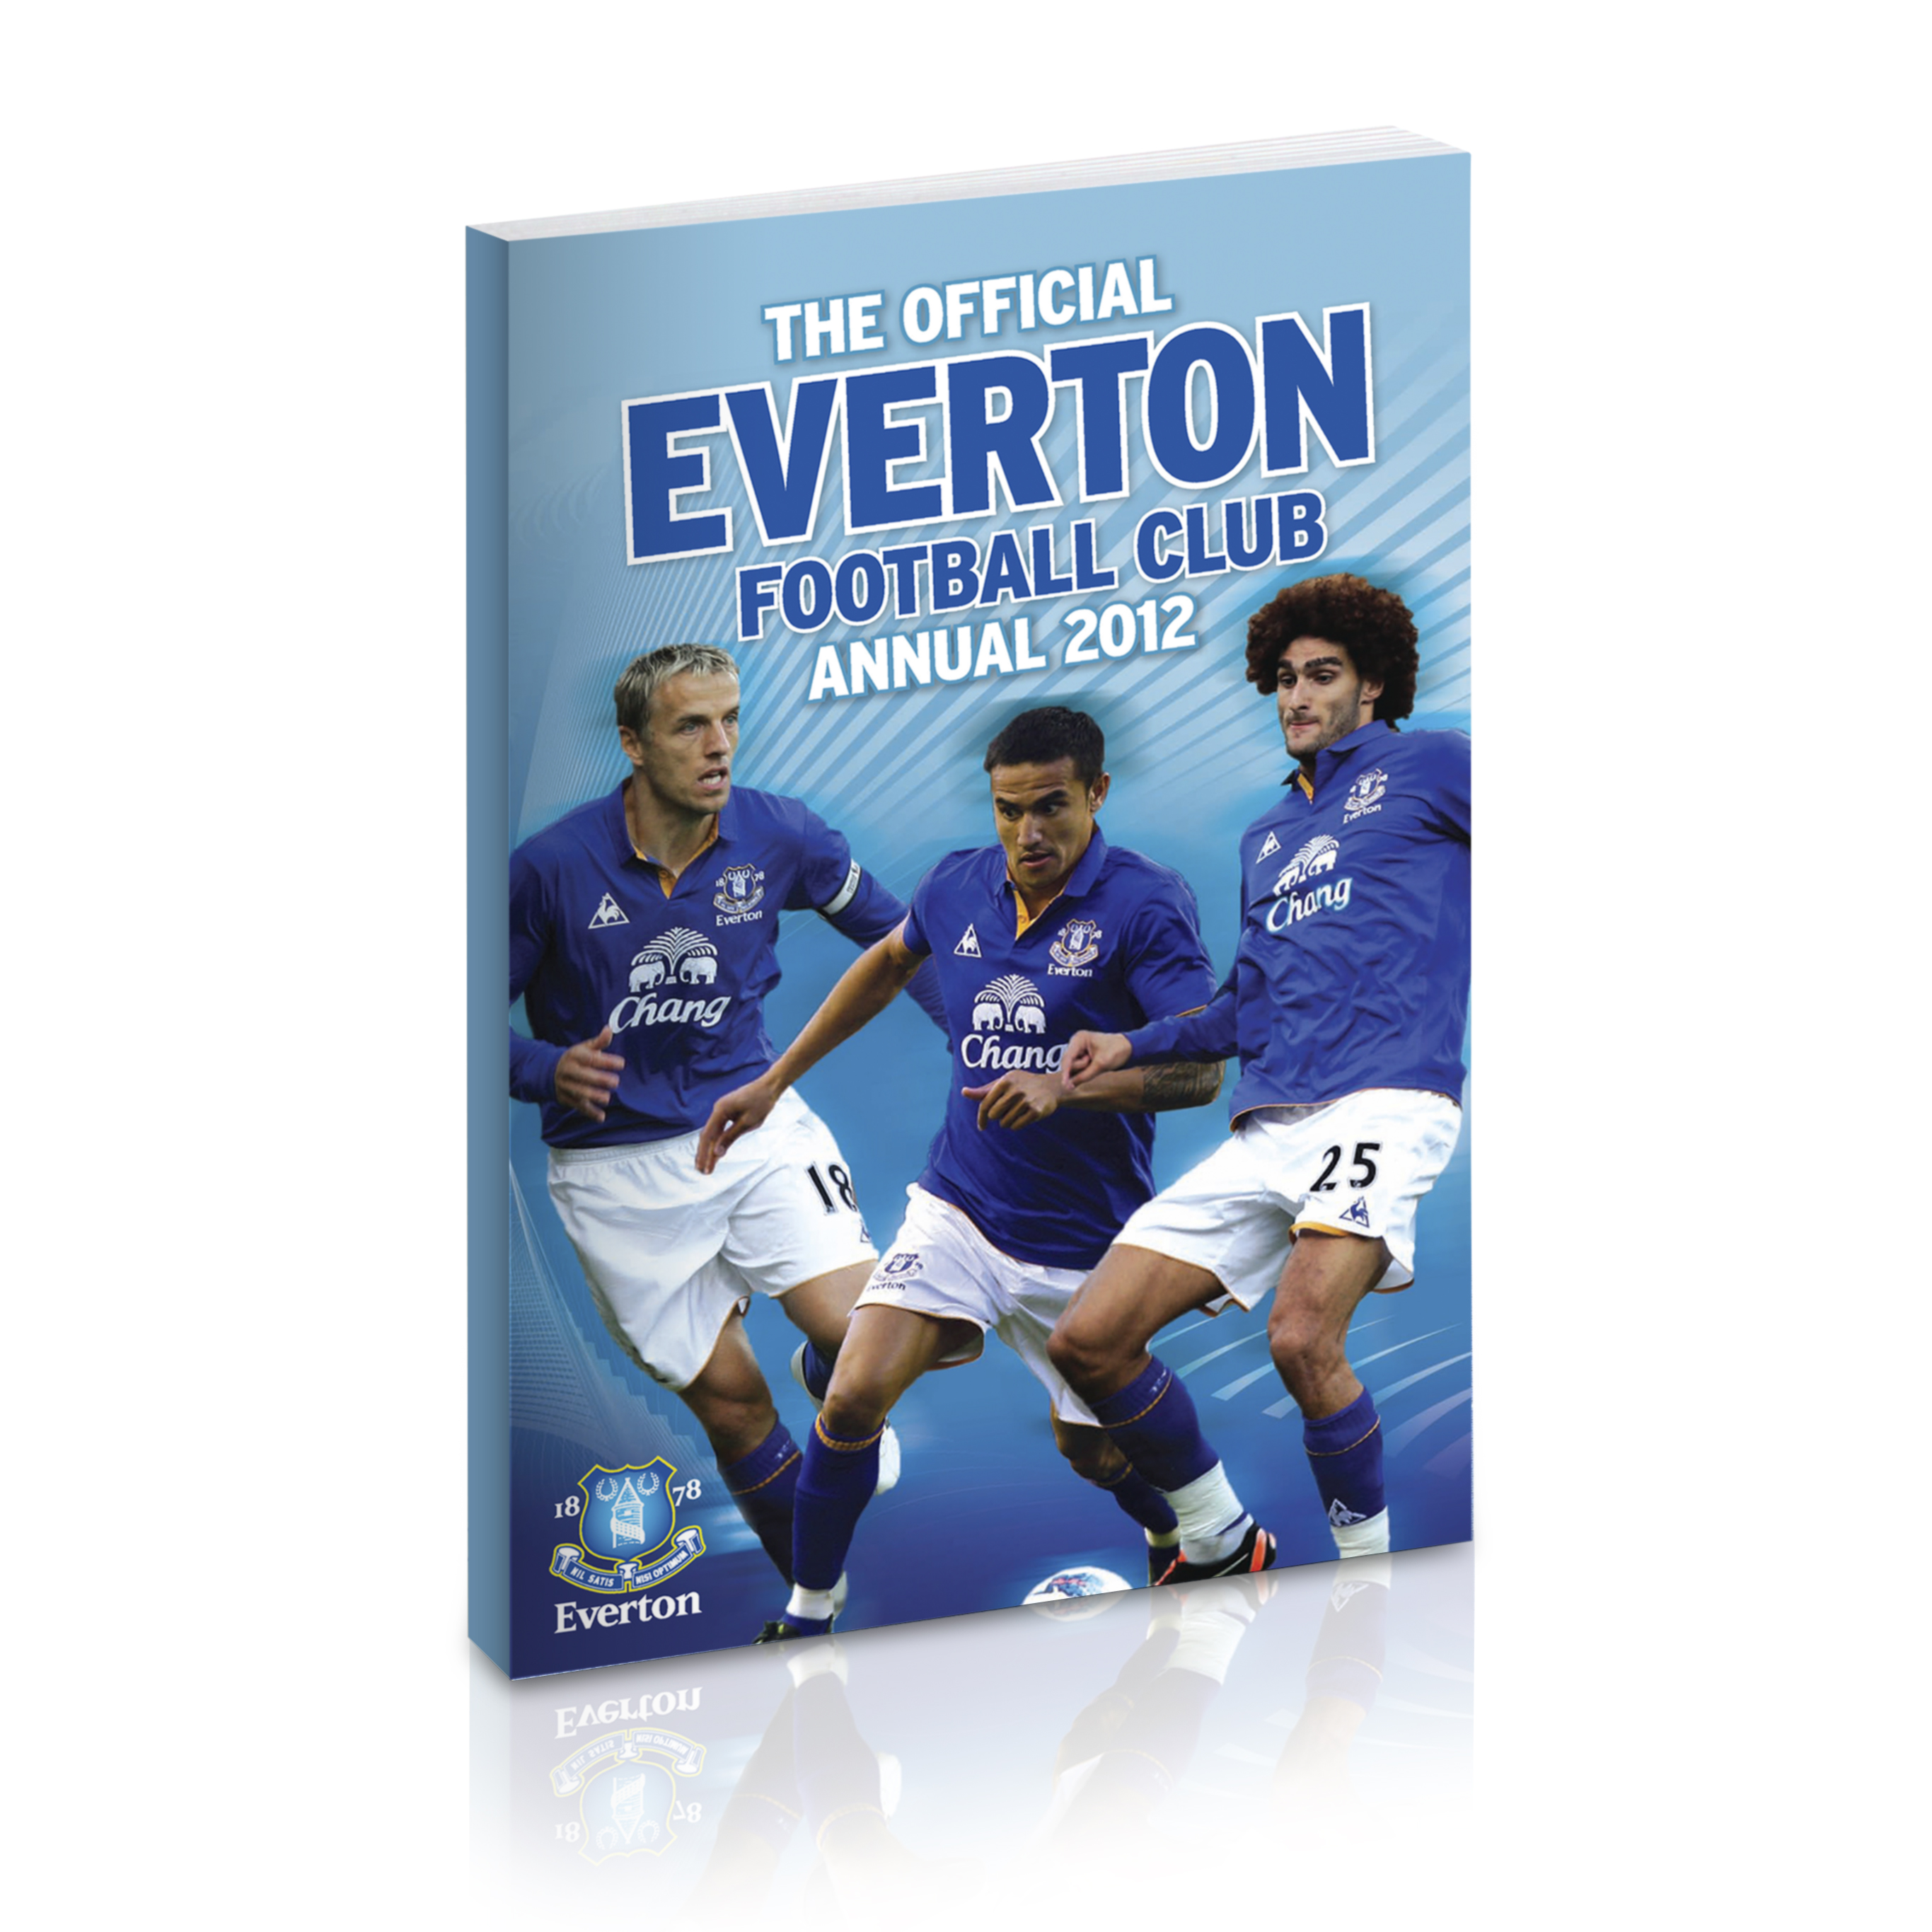 Everton Annual 2012